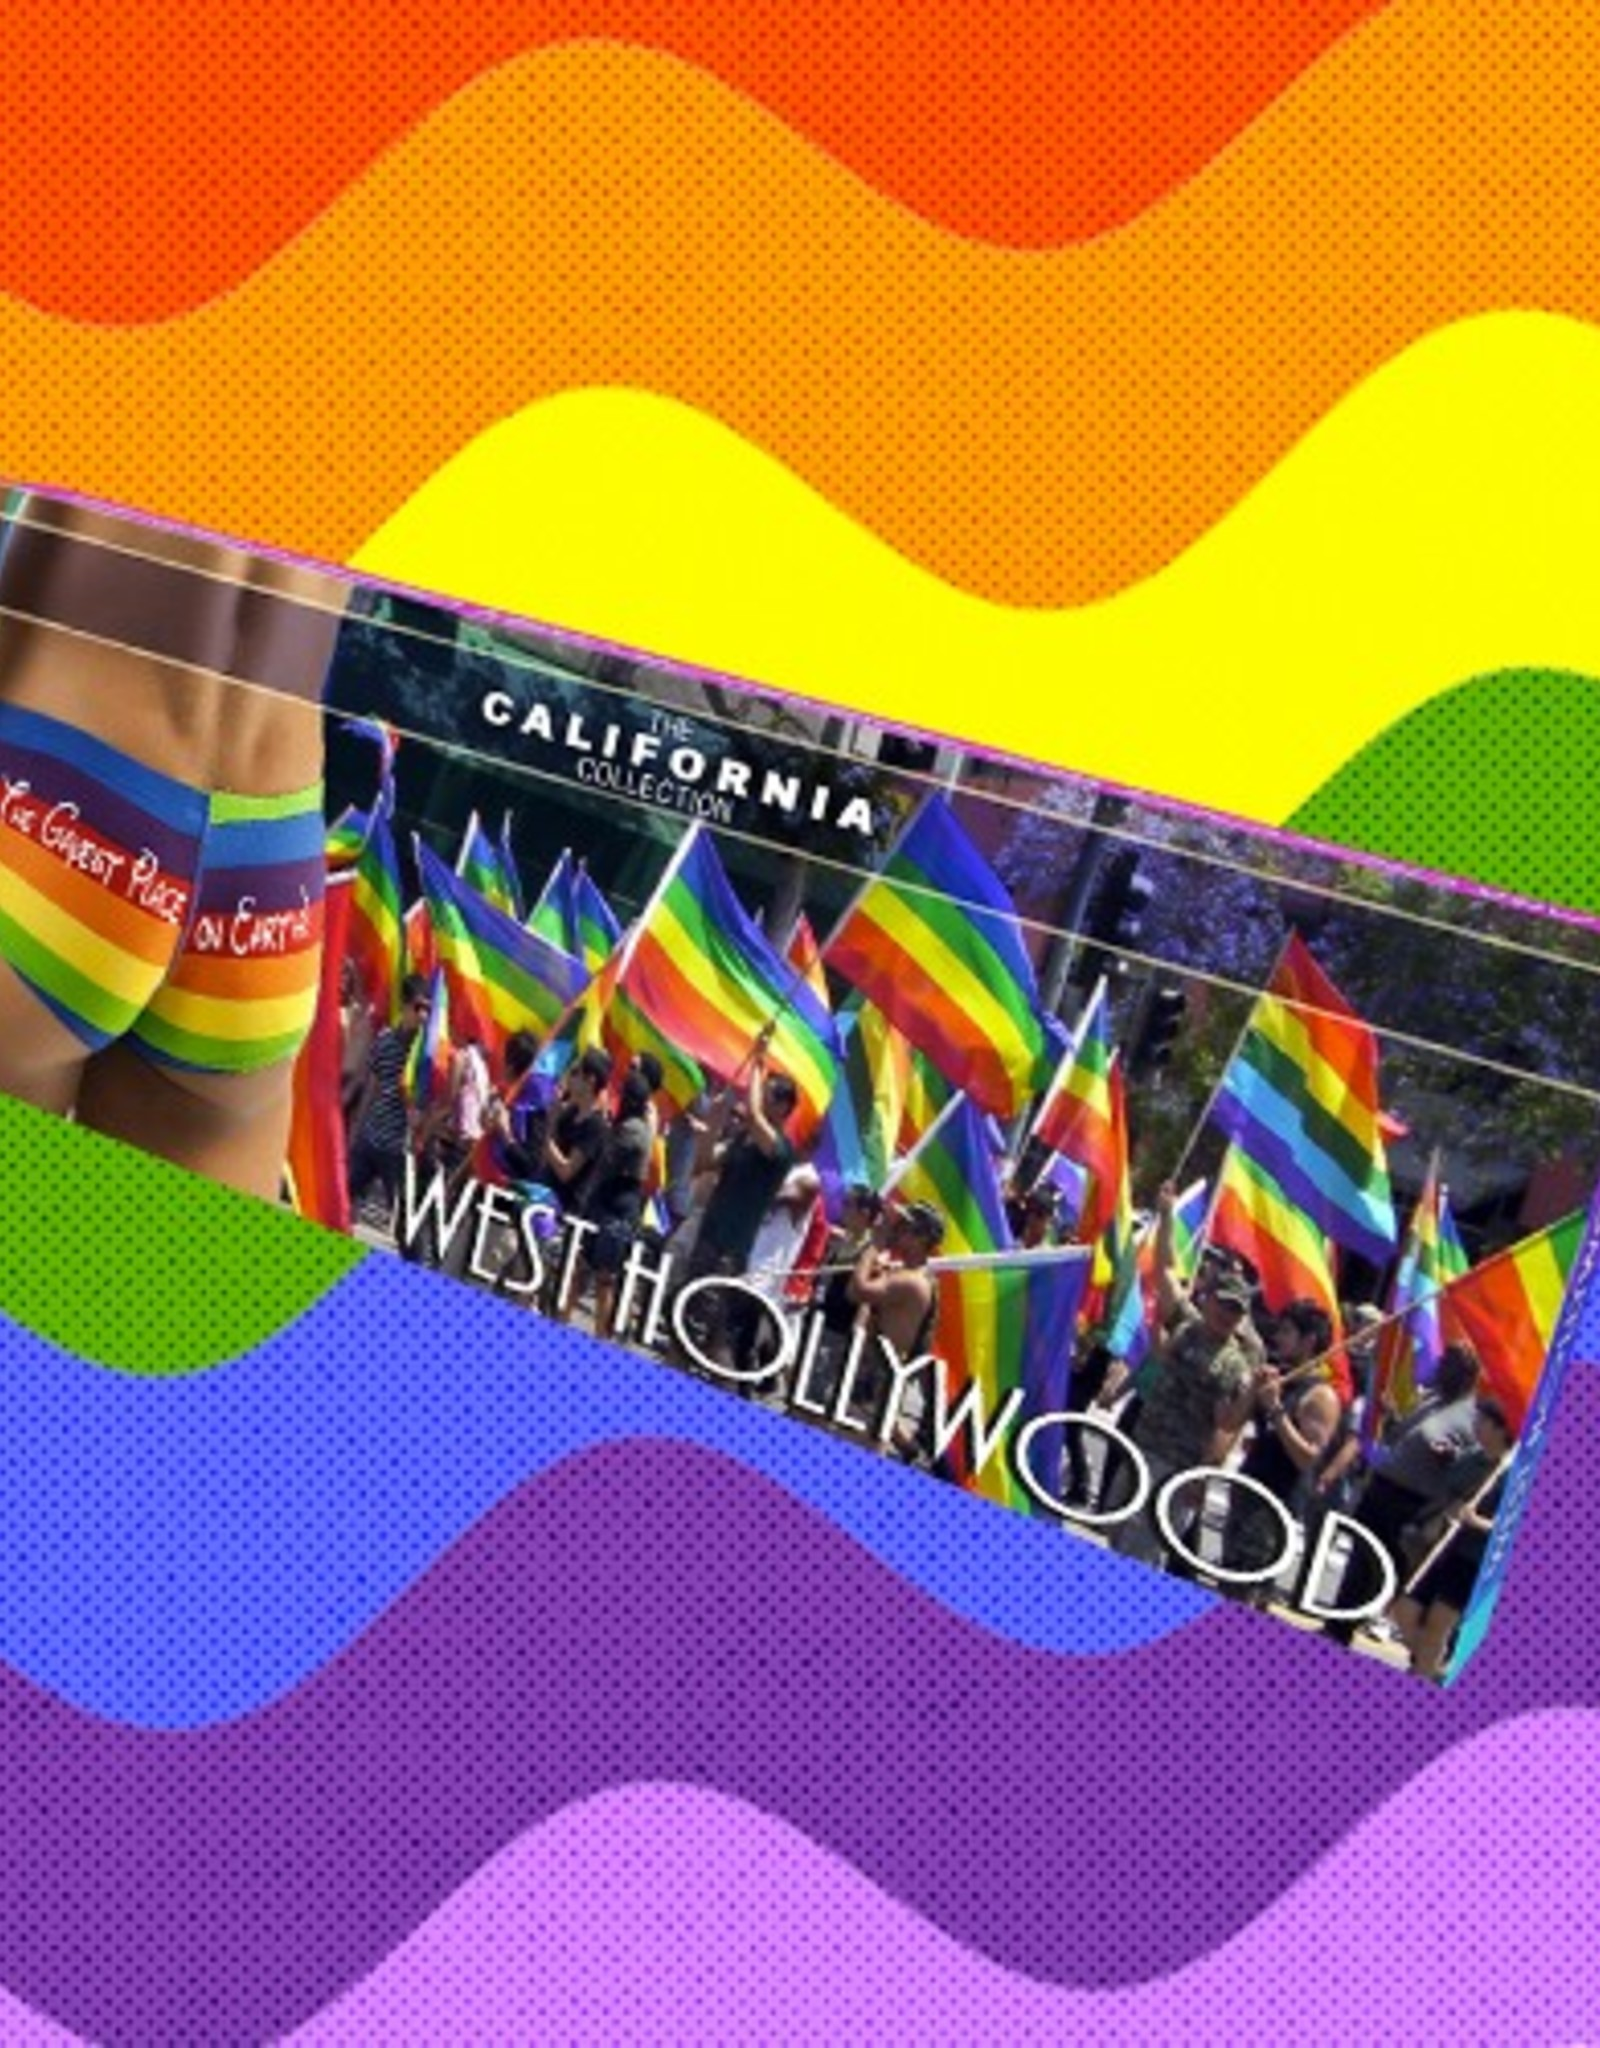 The California Bar Collection: West Hollywood